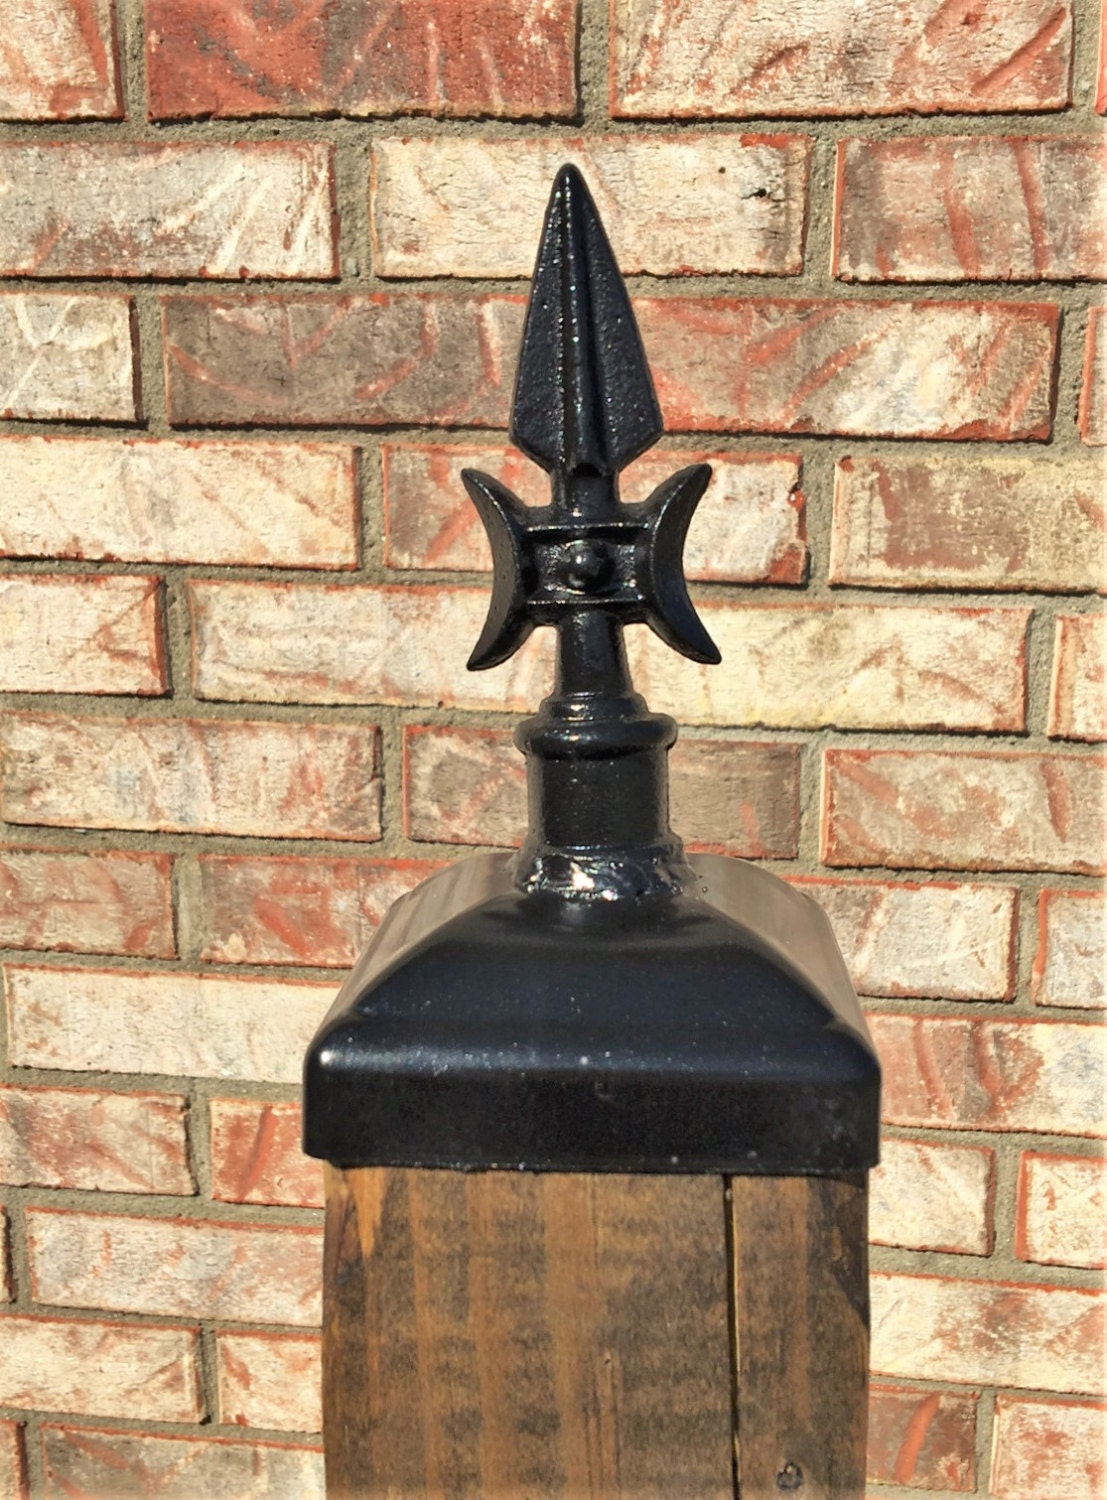 Fence Post Cap Decorative Gothic Spear For 4x4 Fence And Deck